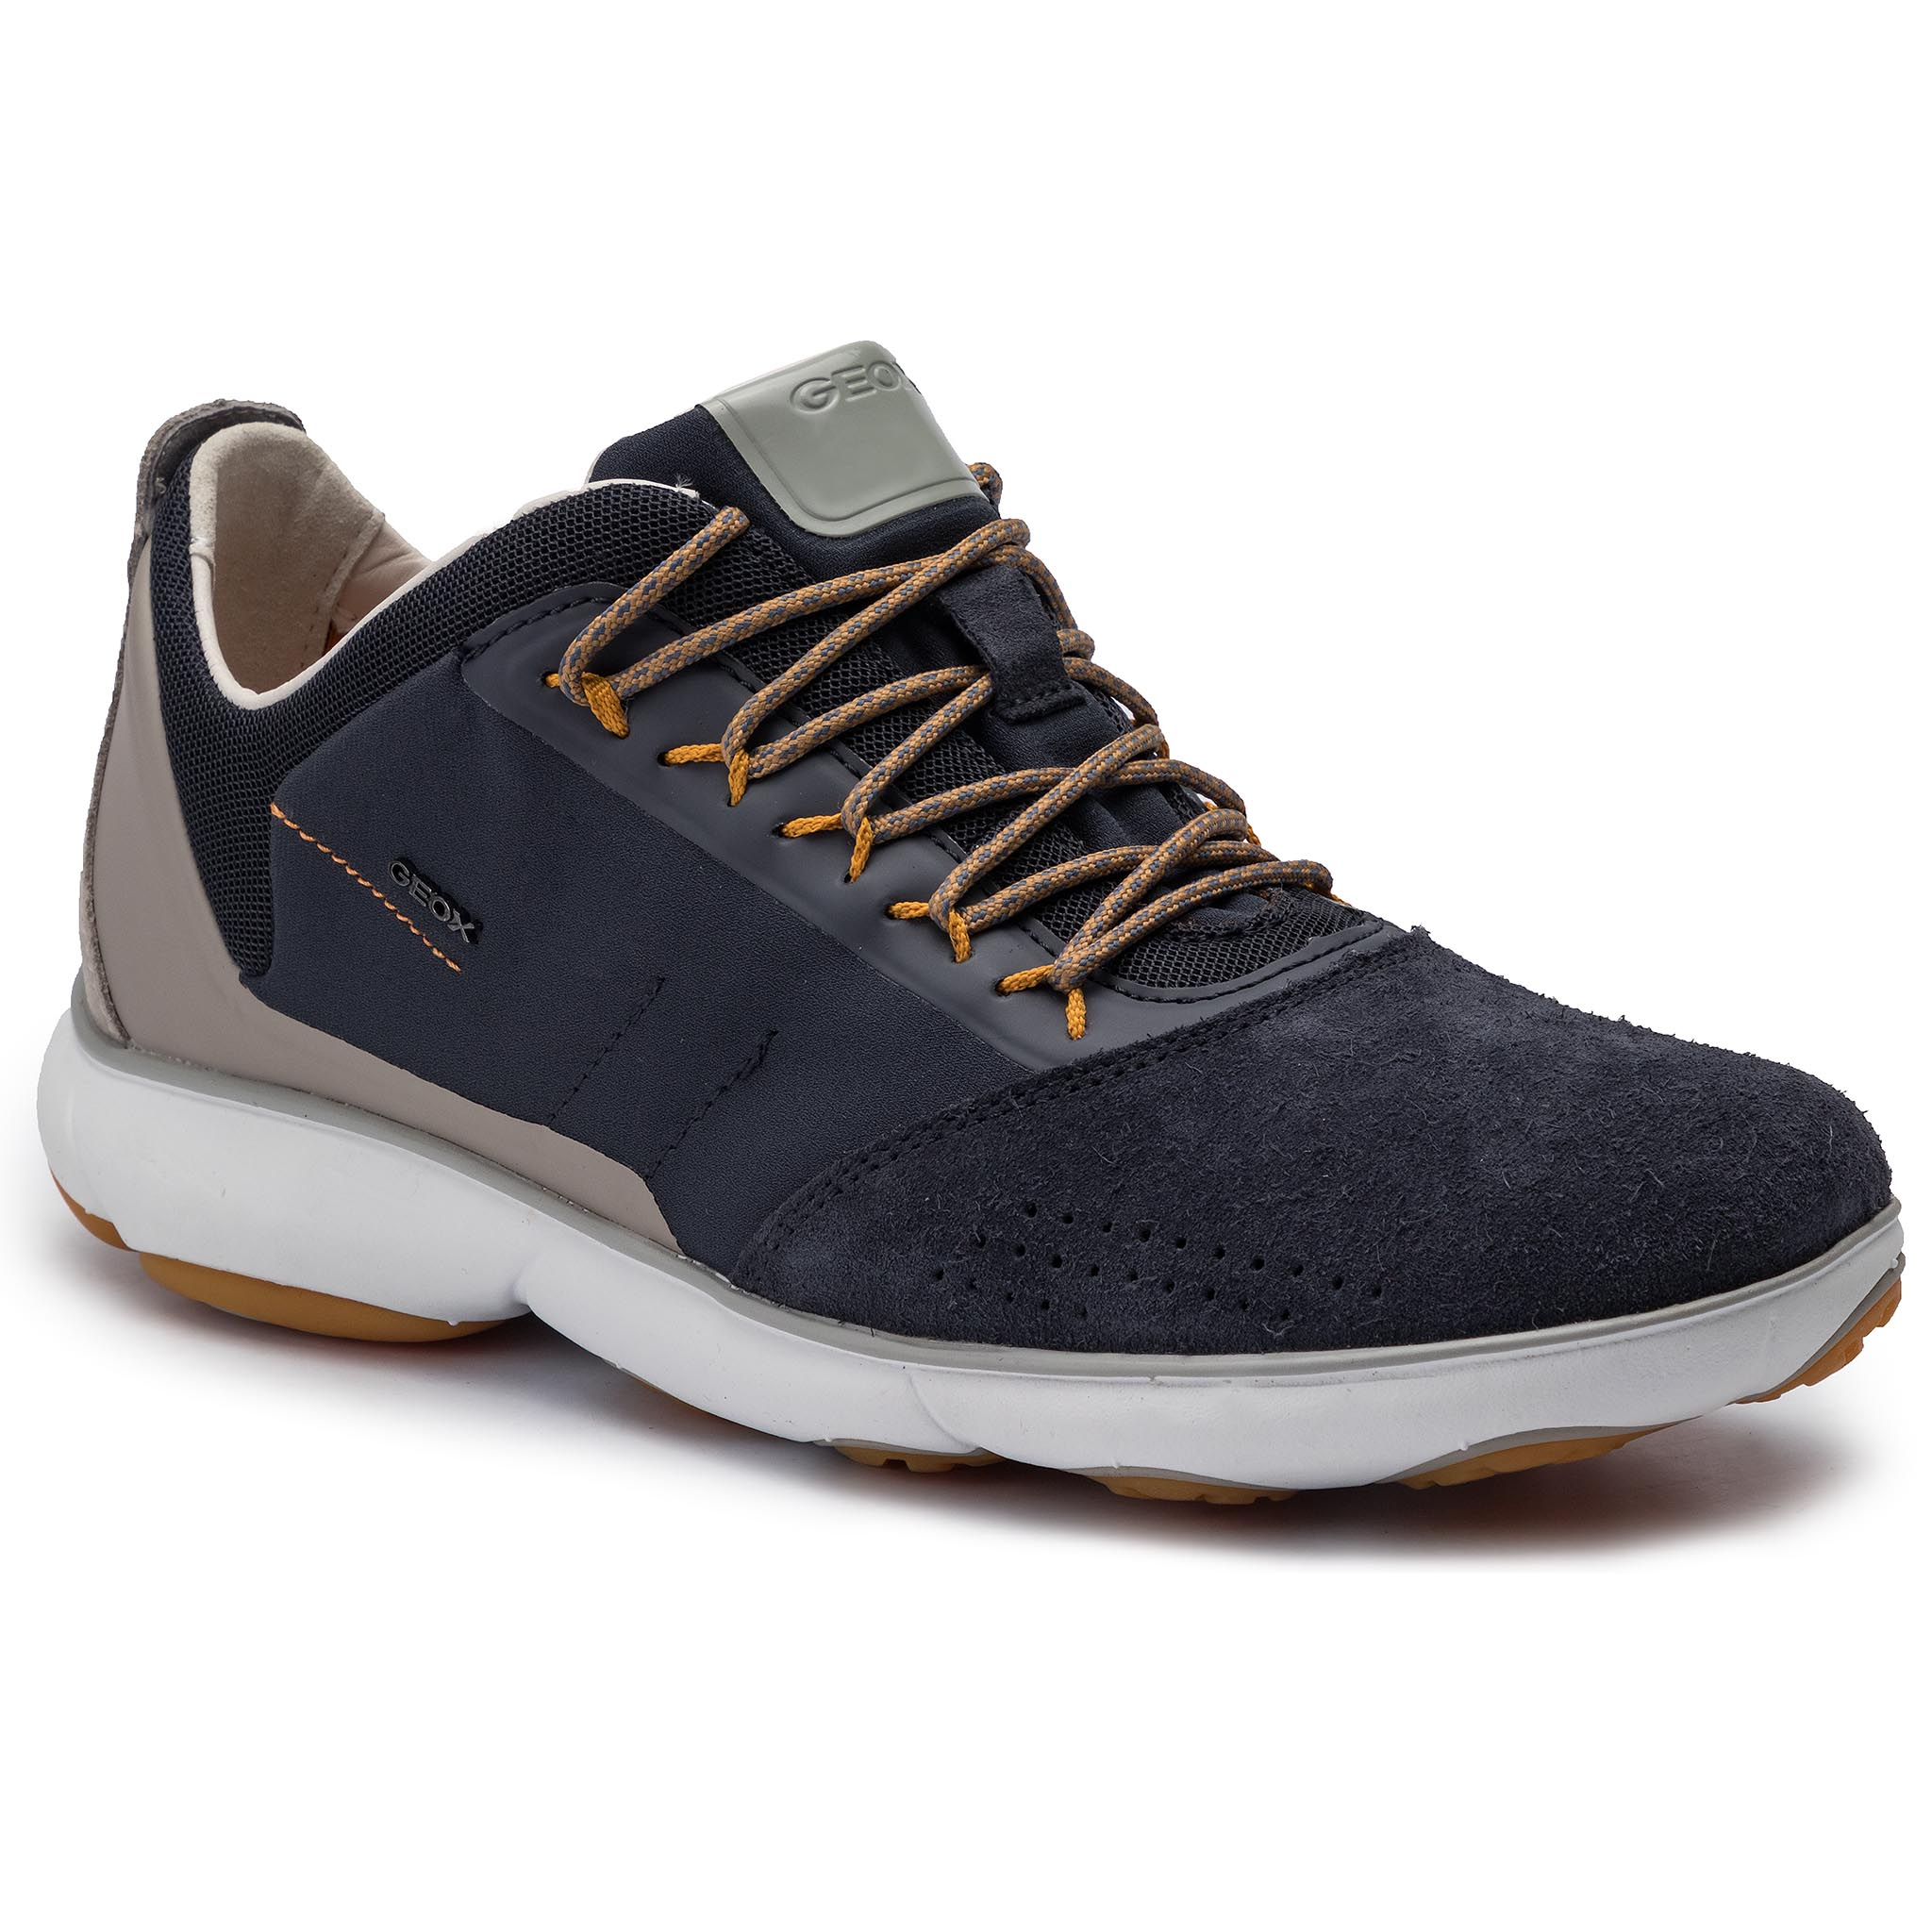 zapatos geox hombre nebula que significa